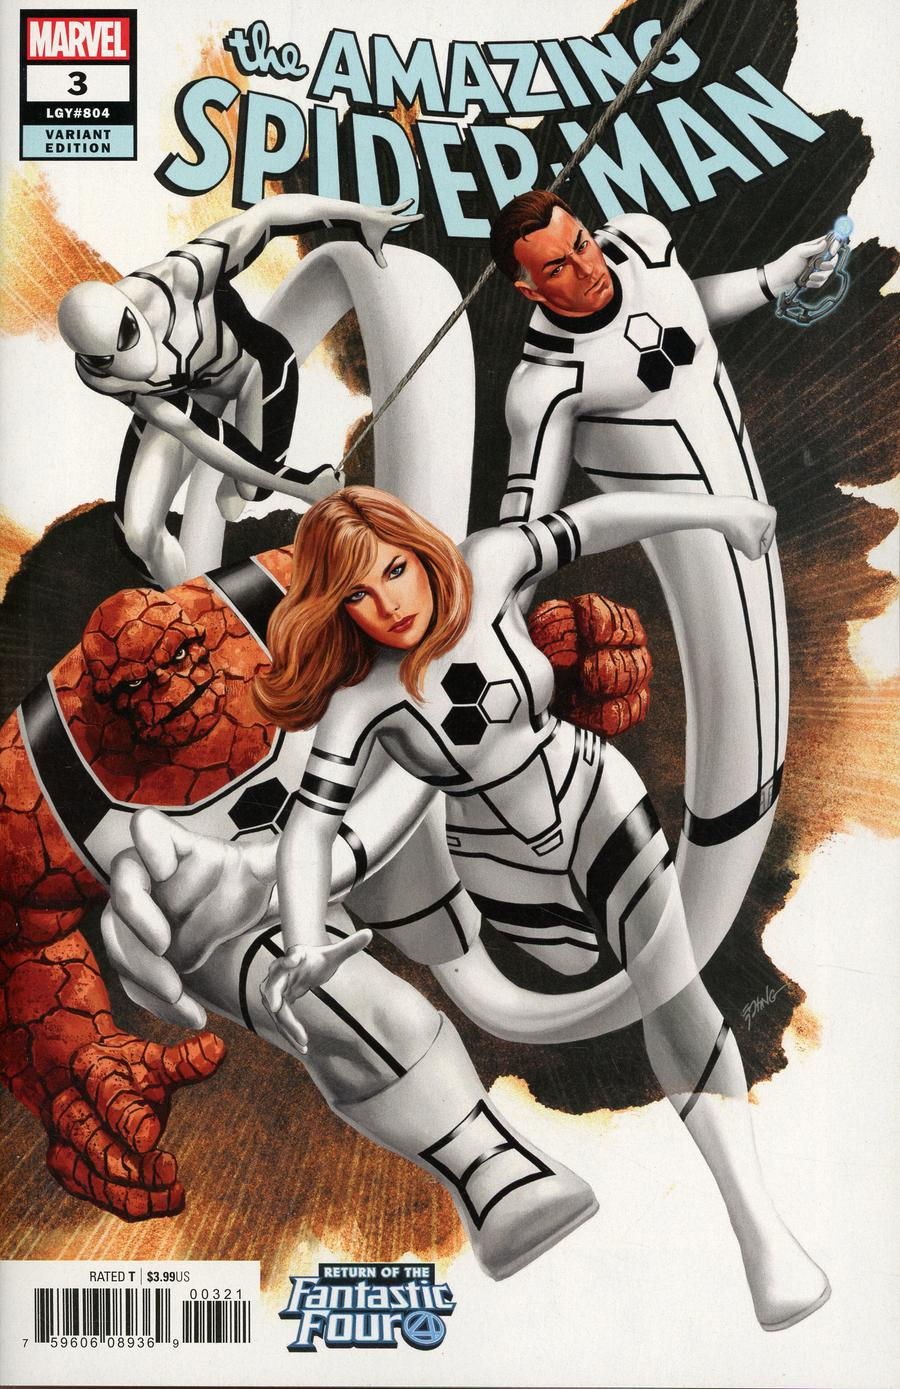 Amazing Spider-Man Vol 5 3 Return of the Fantastic Four Variant.jpg